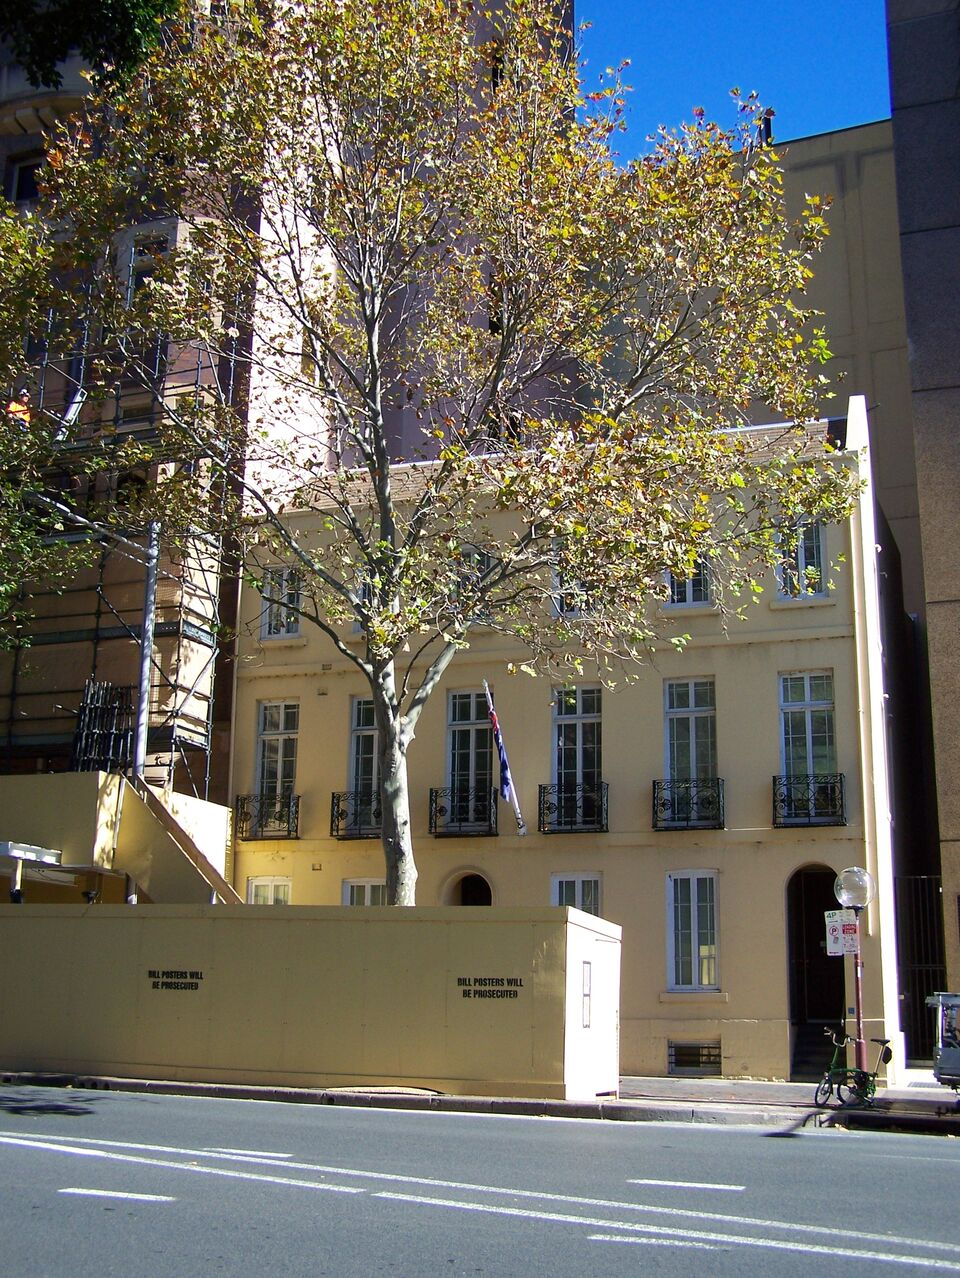 22 Horbury Terrace, Macquarie Street, Sydney. Frances White ran a respectable boarding house here advertising...